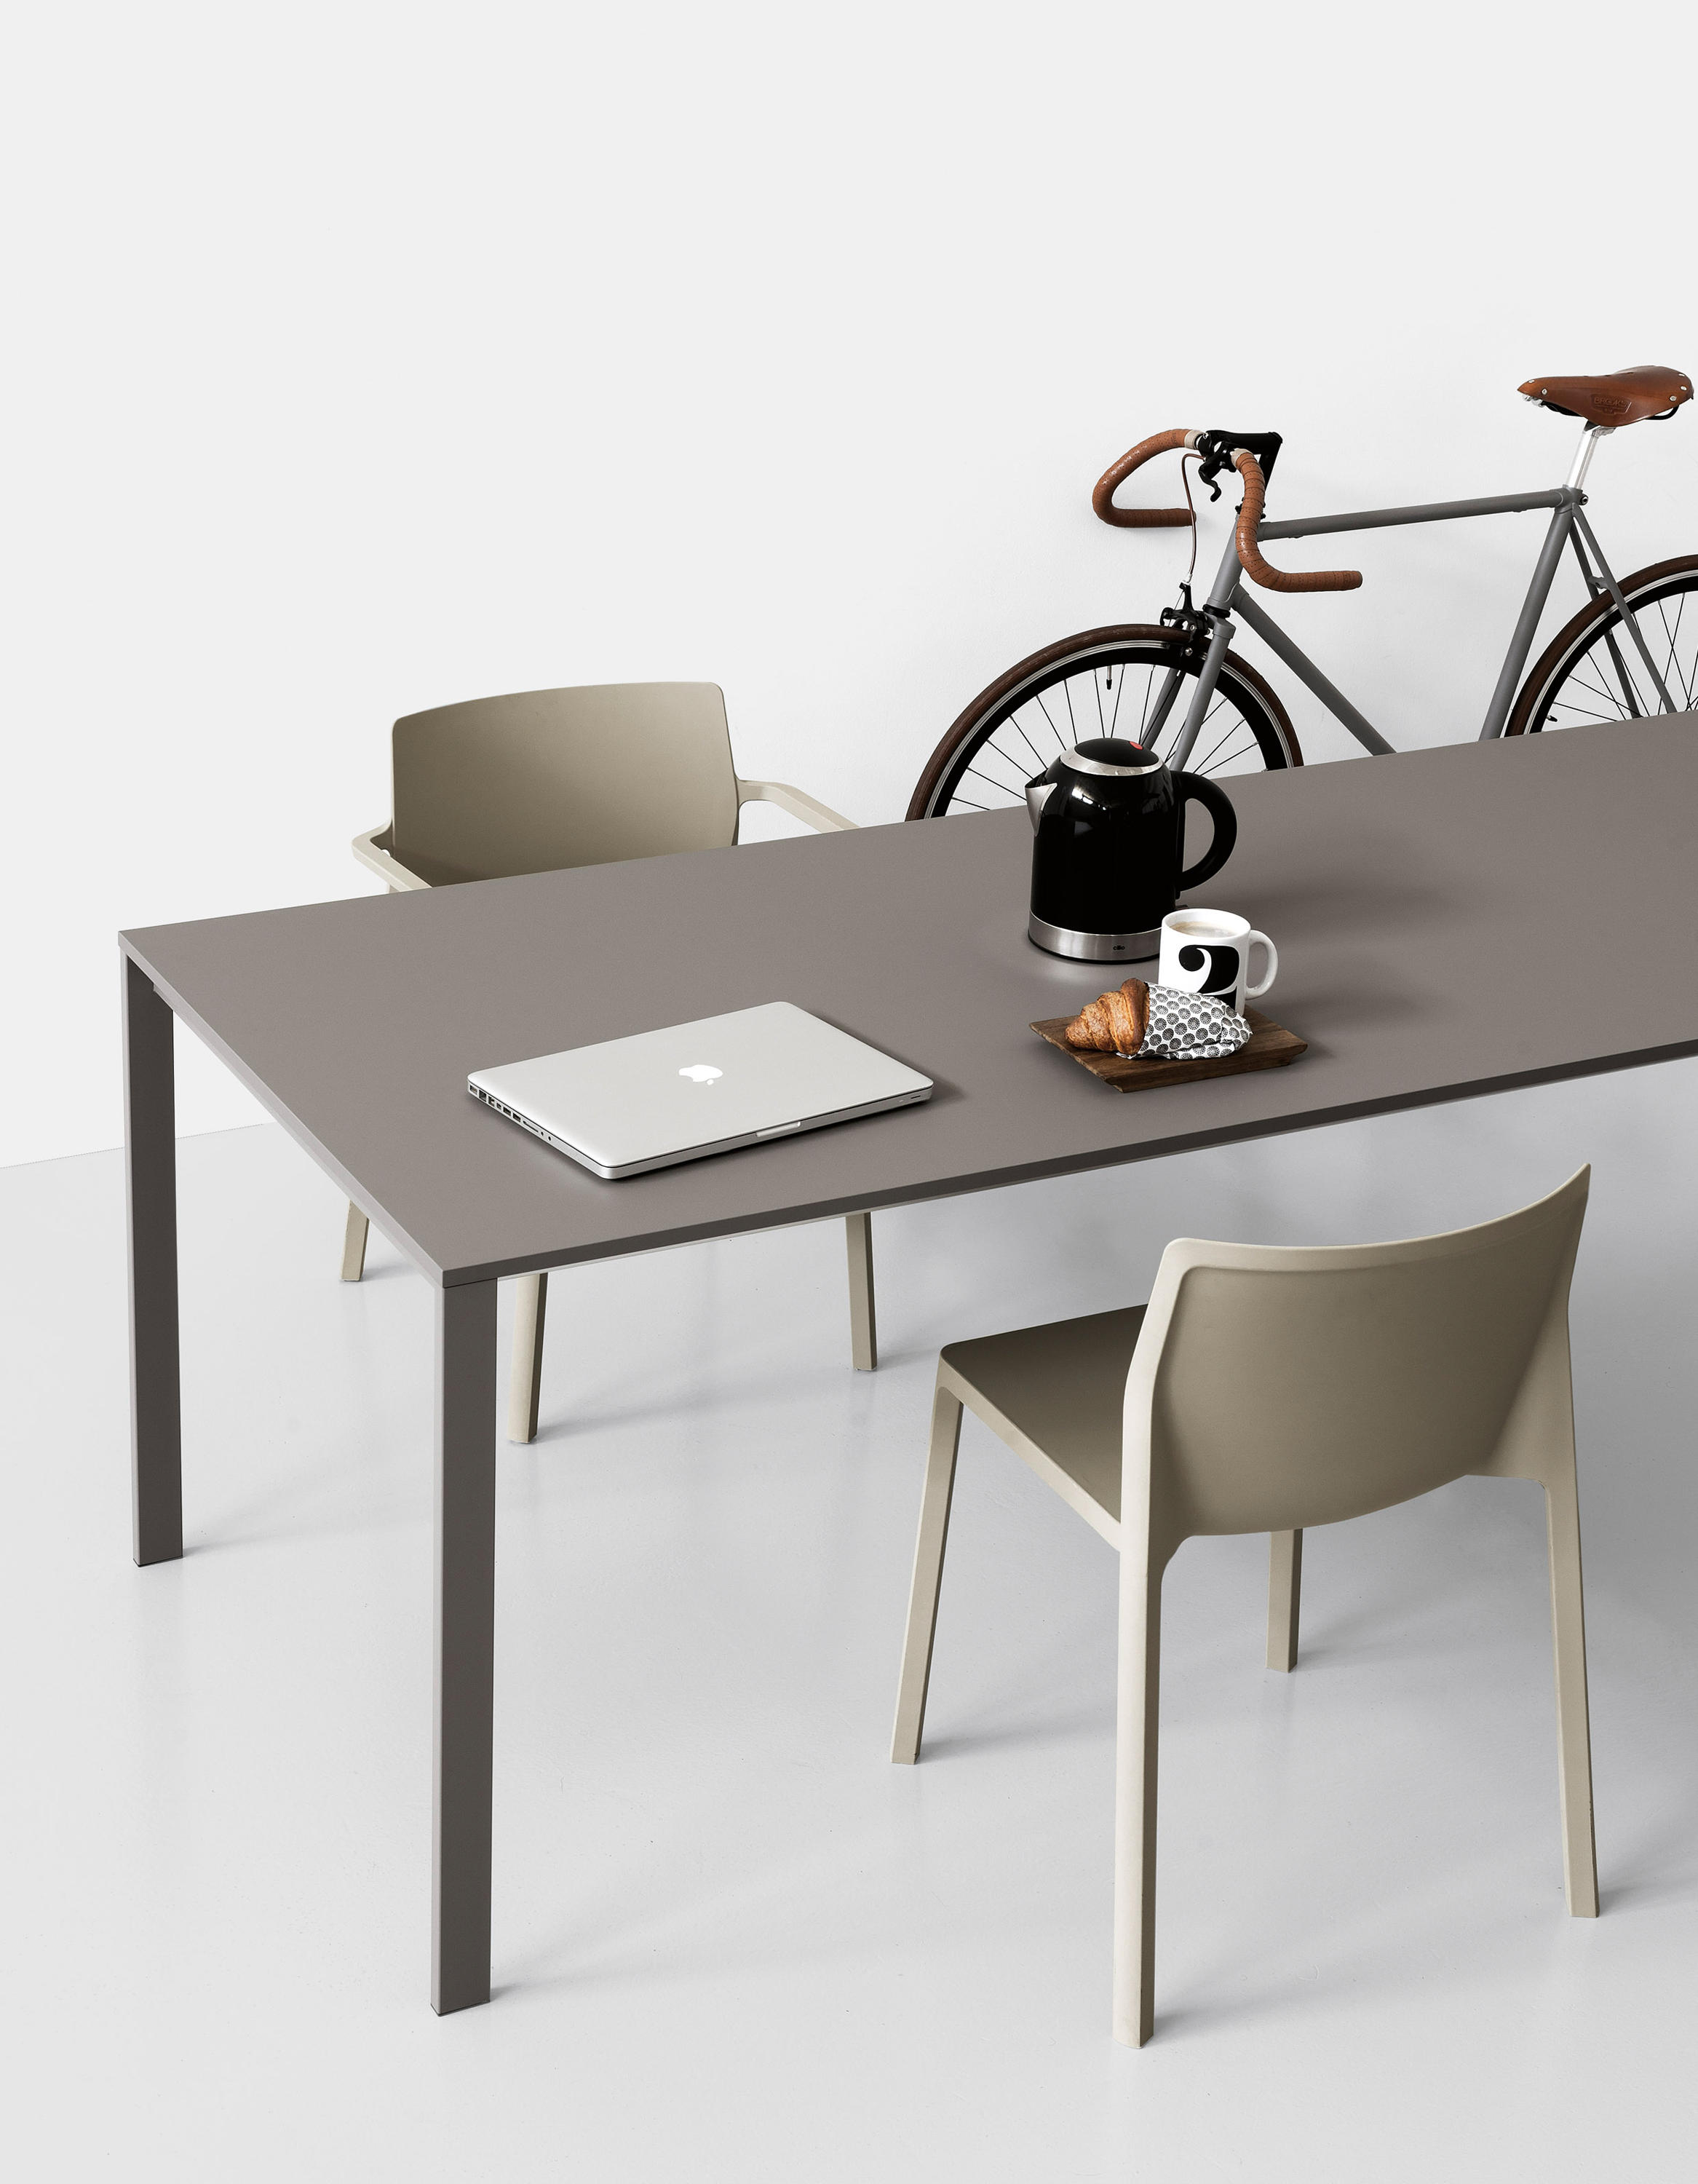 Be easy table meeting room tables from kristalia for Table kristalia